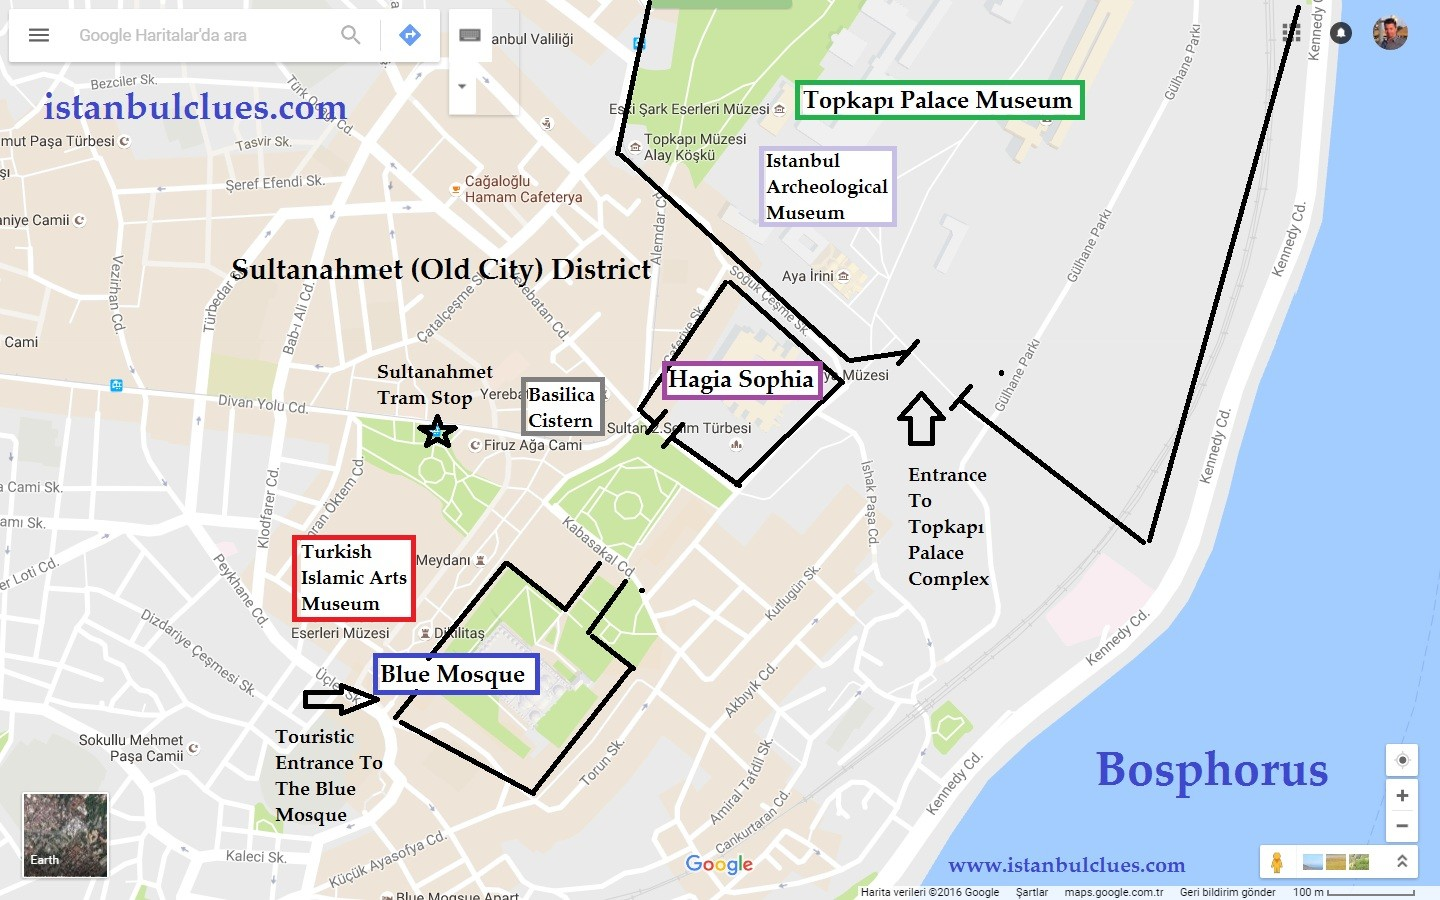 Maps Of Istanbul Turkey 2017 – Istanbul Tourist Attractions Map